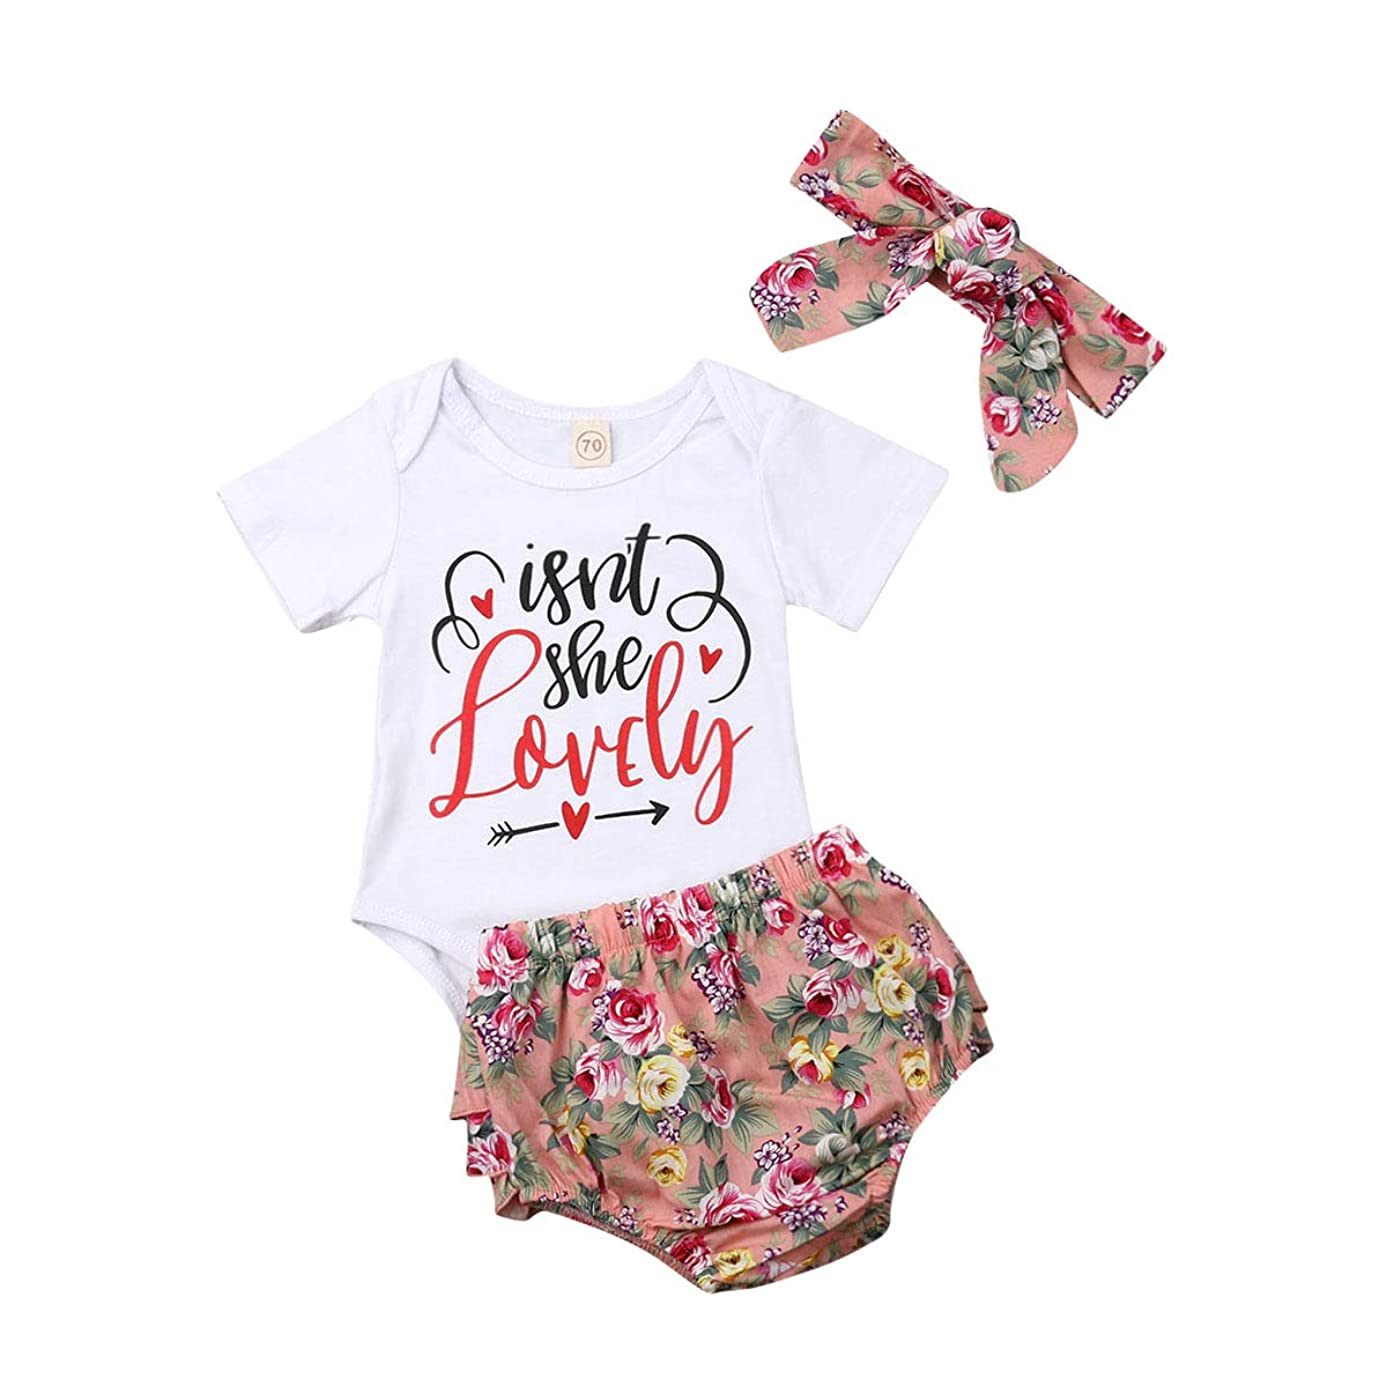 Newborn Baby Girl Clothes Isnt She Lovely Outfit White Romper Bodysuit Top Floral Pants Set with Headband Hat 4Pcs Clothing (9-12 Months, Floral)